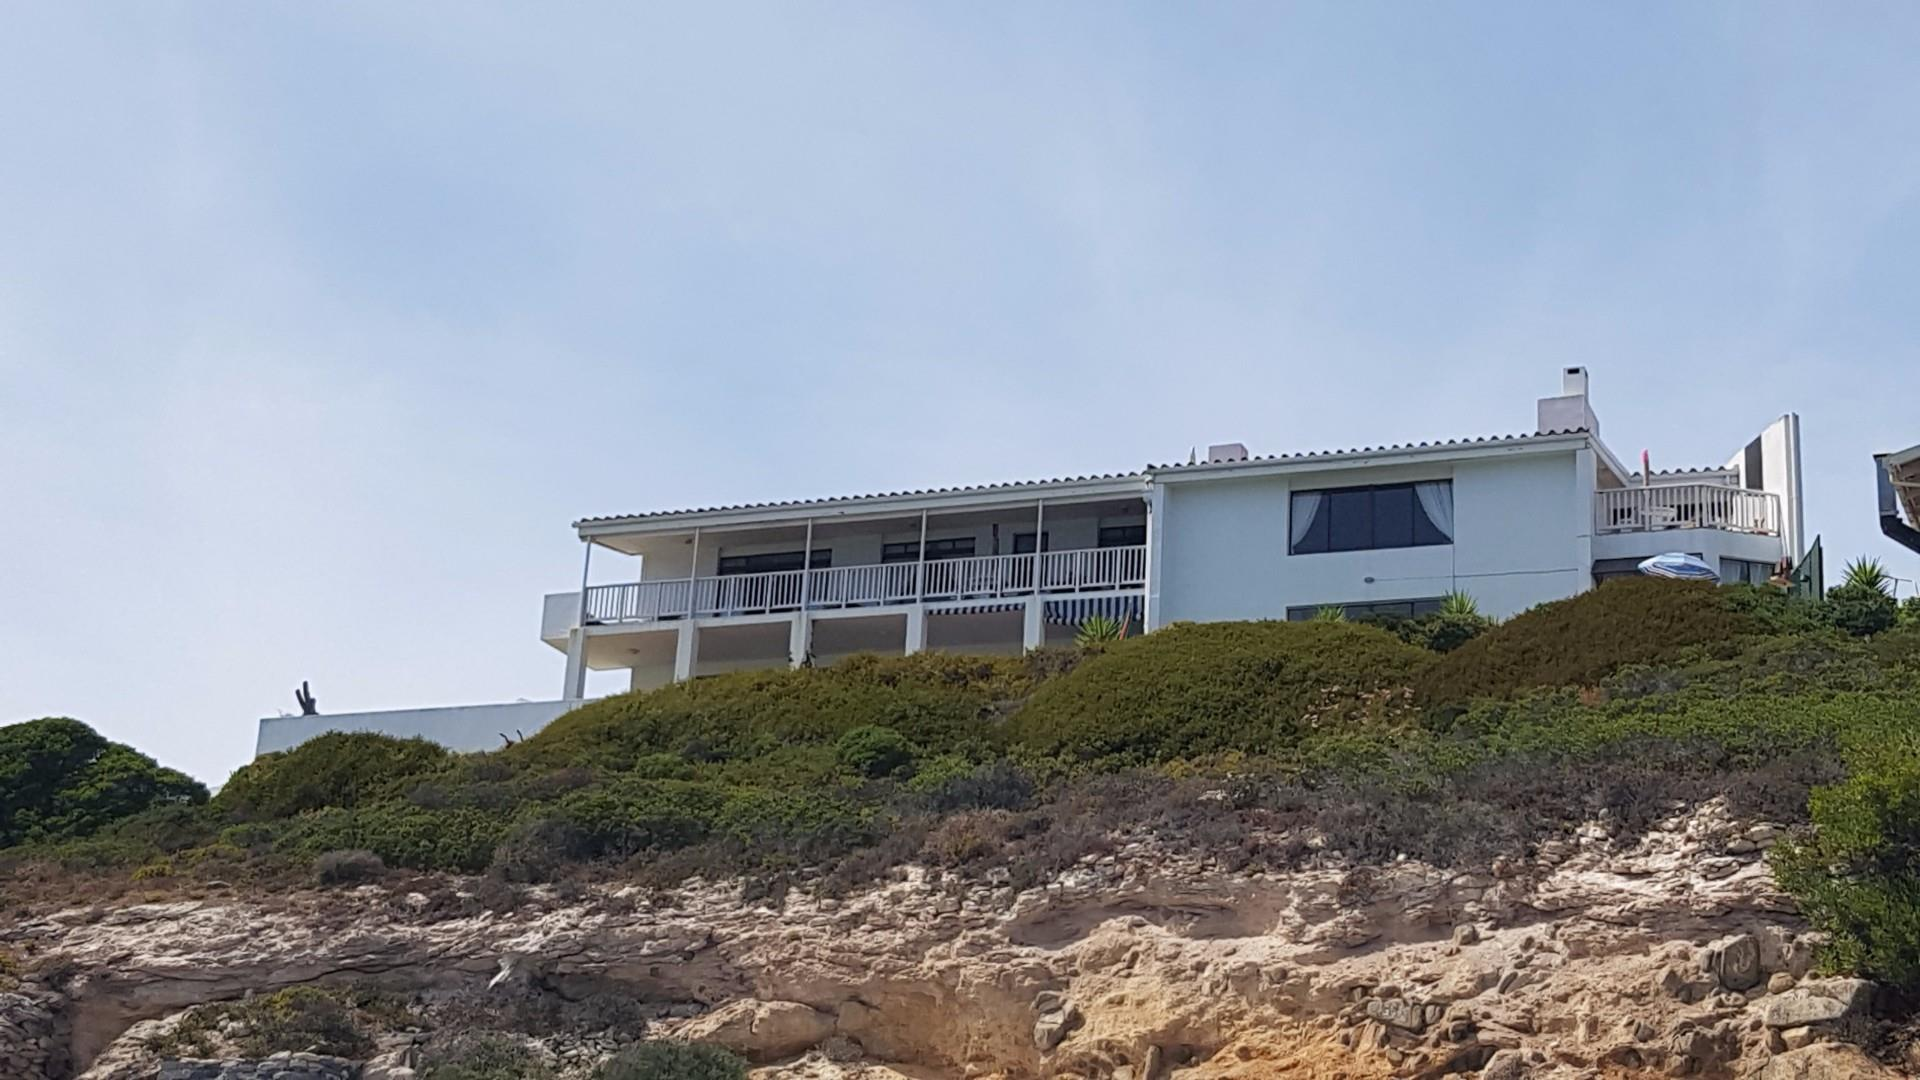 Yzerfontein, Yzerfontein Property  | Houses For Sale Yzerfontein, Yzerfontein, House 5 bedrooms property for sale Price:8,500,000